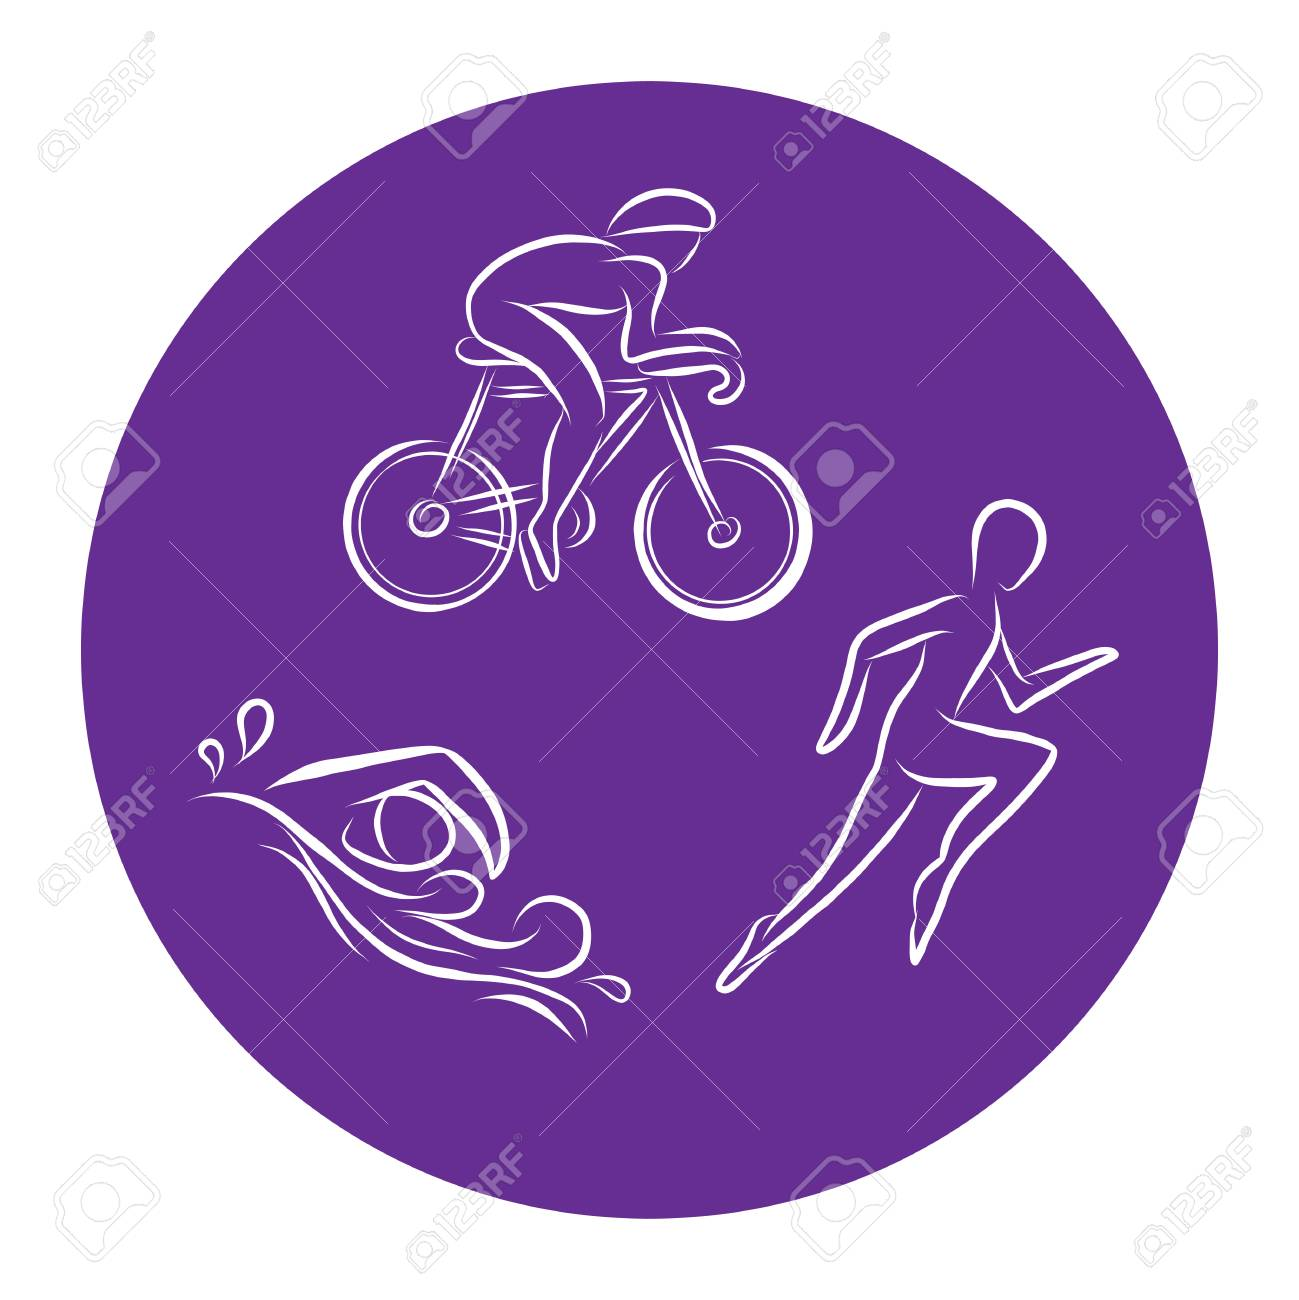 Triathlon hand drawn outline icons set for sport event or marathon or competition or triathlon team or club materials, check list, invitation, poster, banner, logo. Swim, bike, run icons and lettering - 112142400